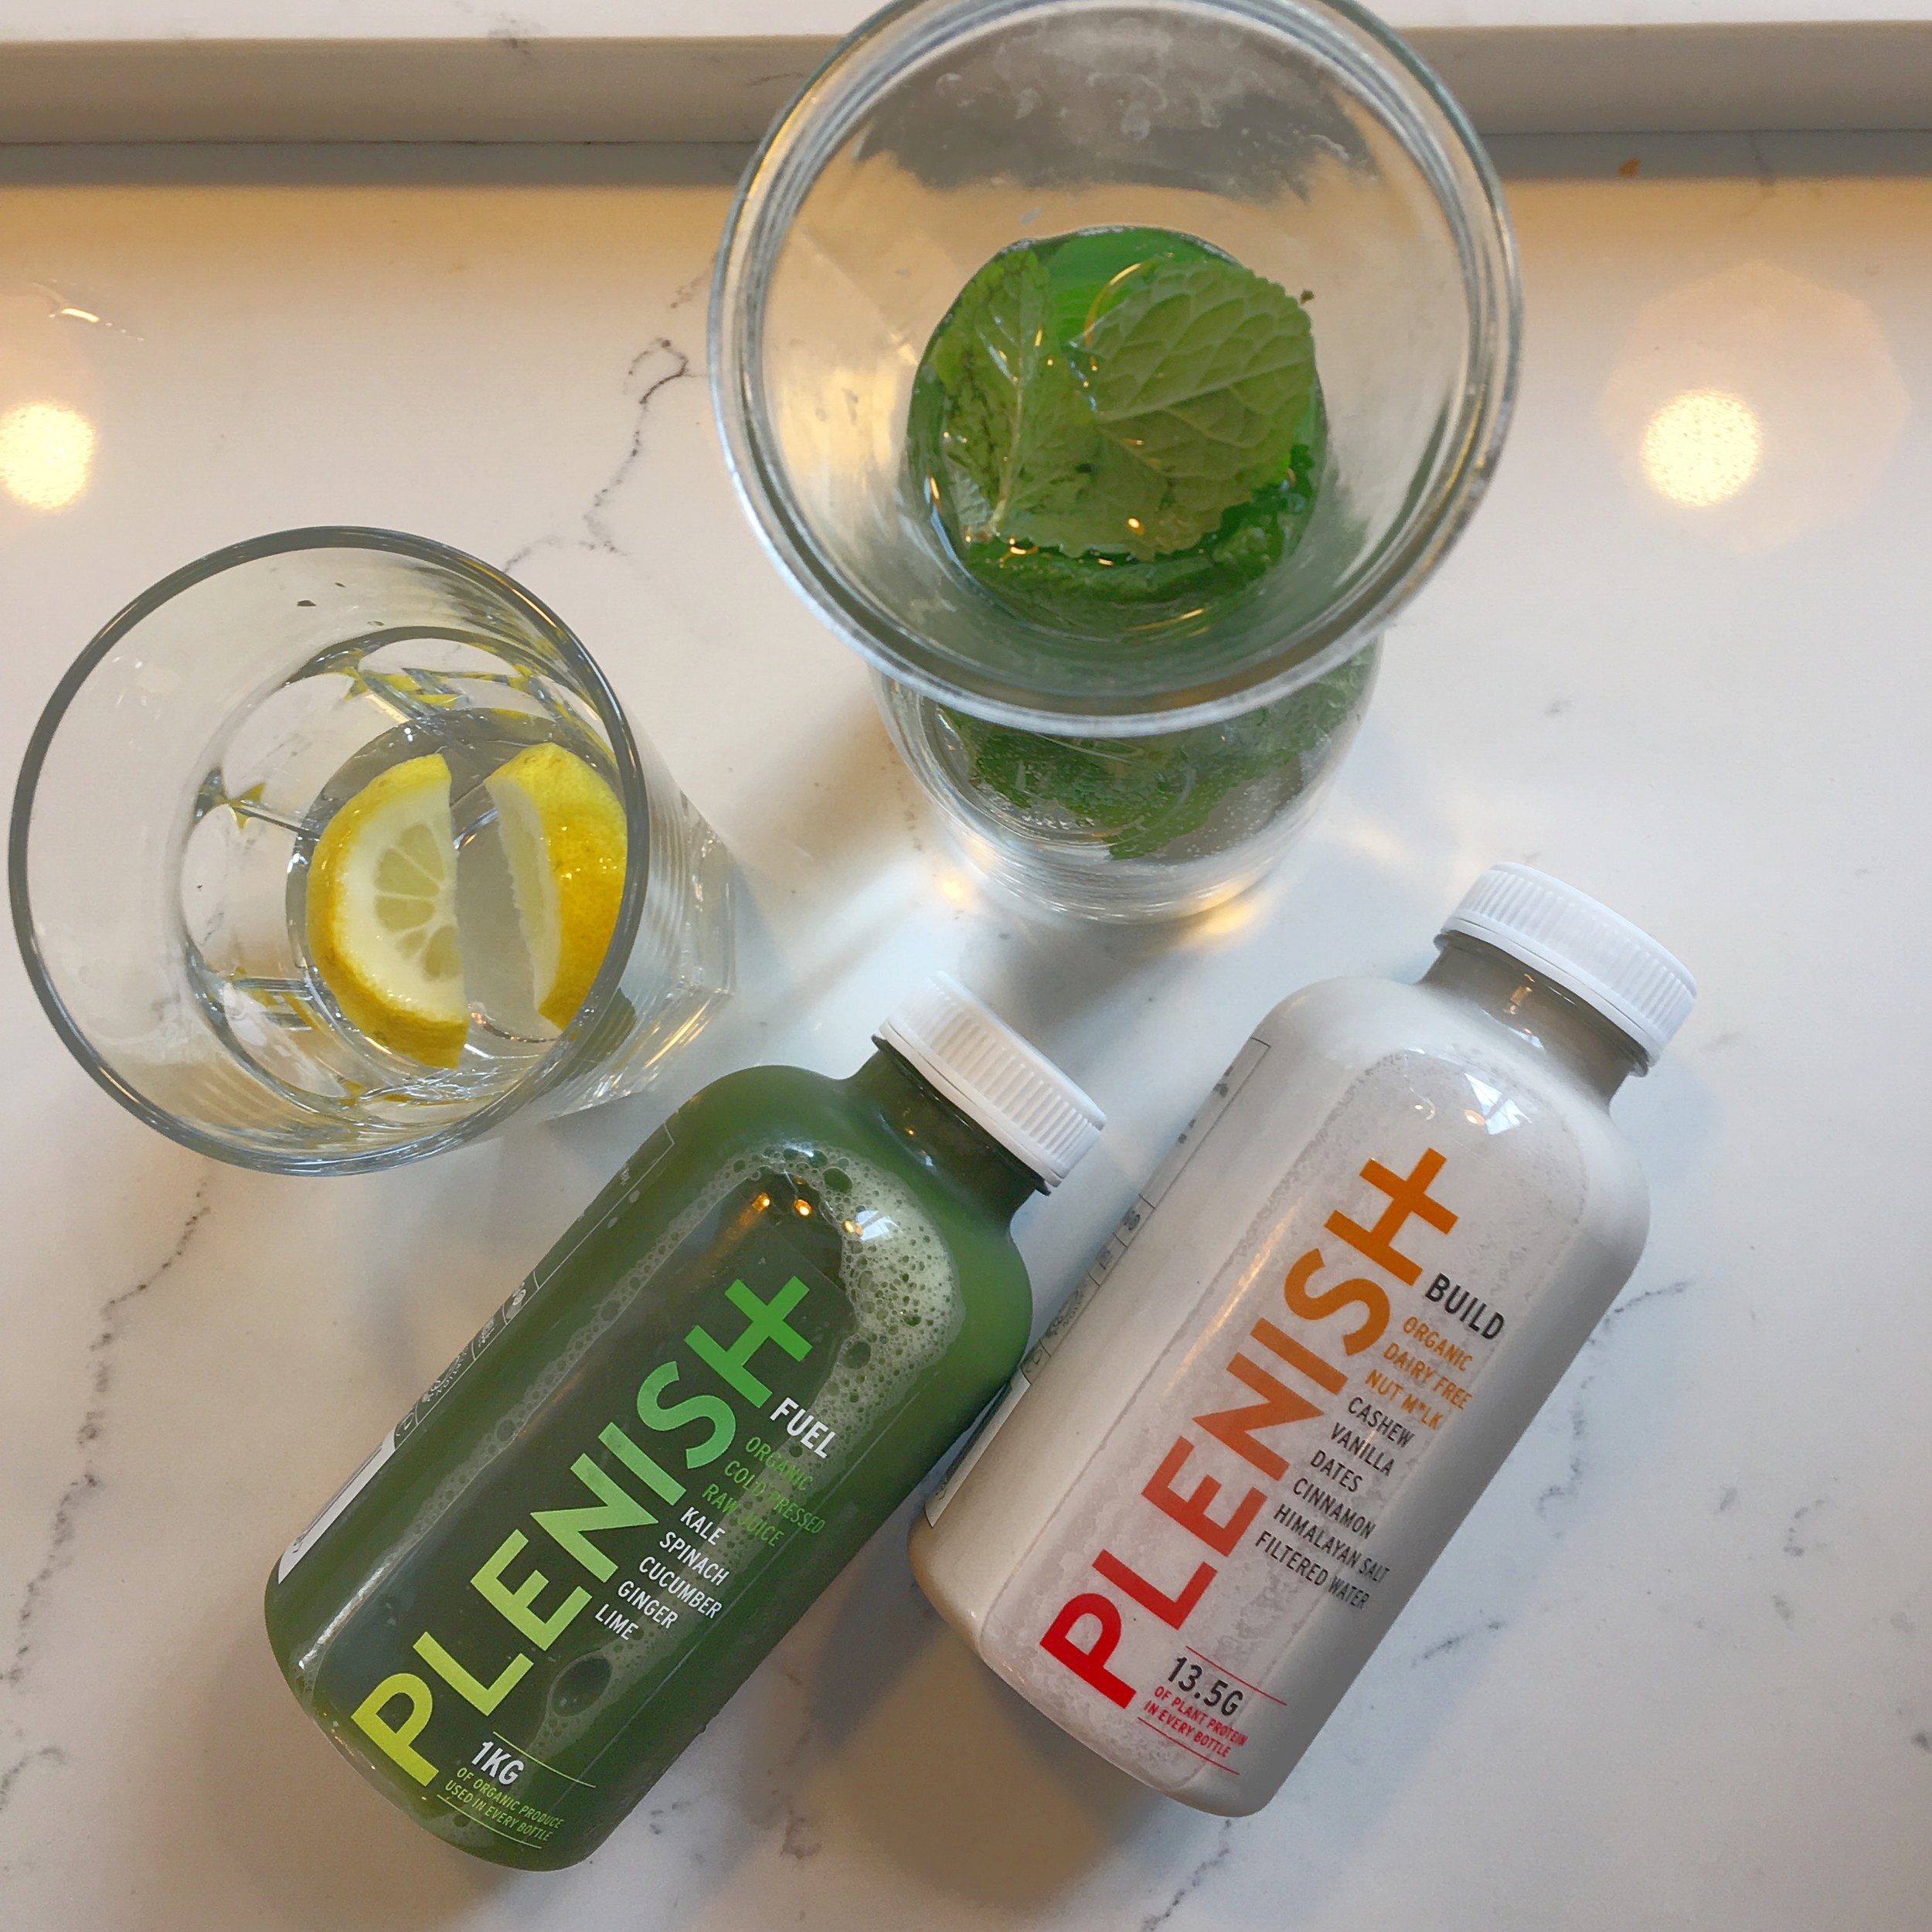 PLENISH LONDON JUICE CLEANSE